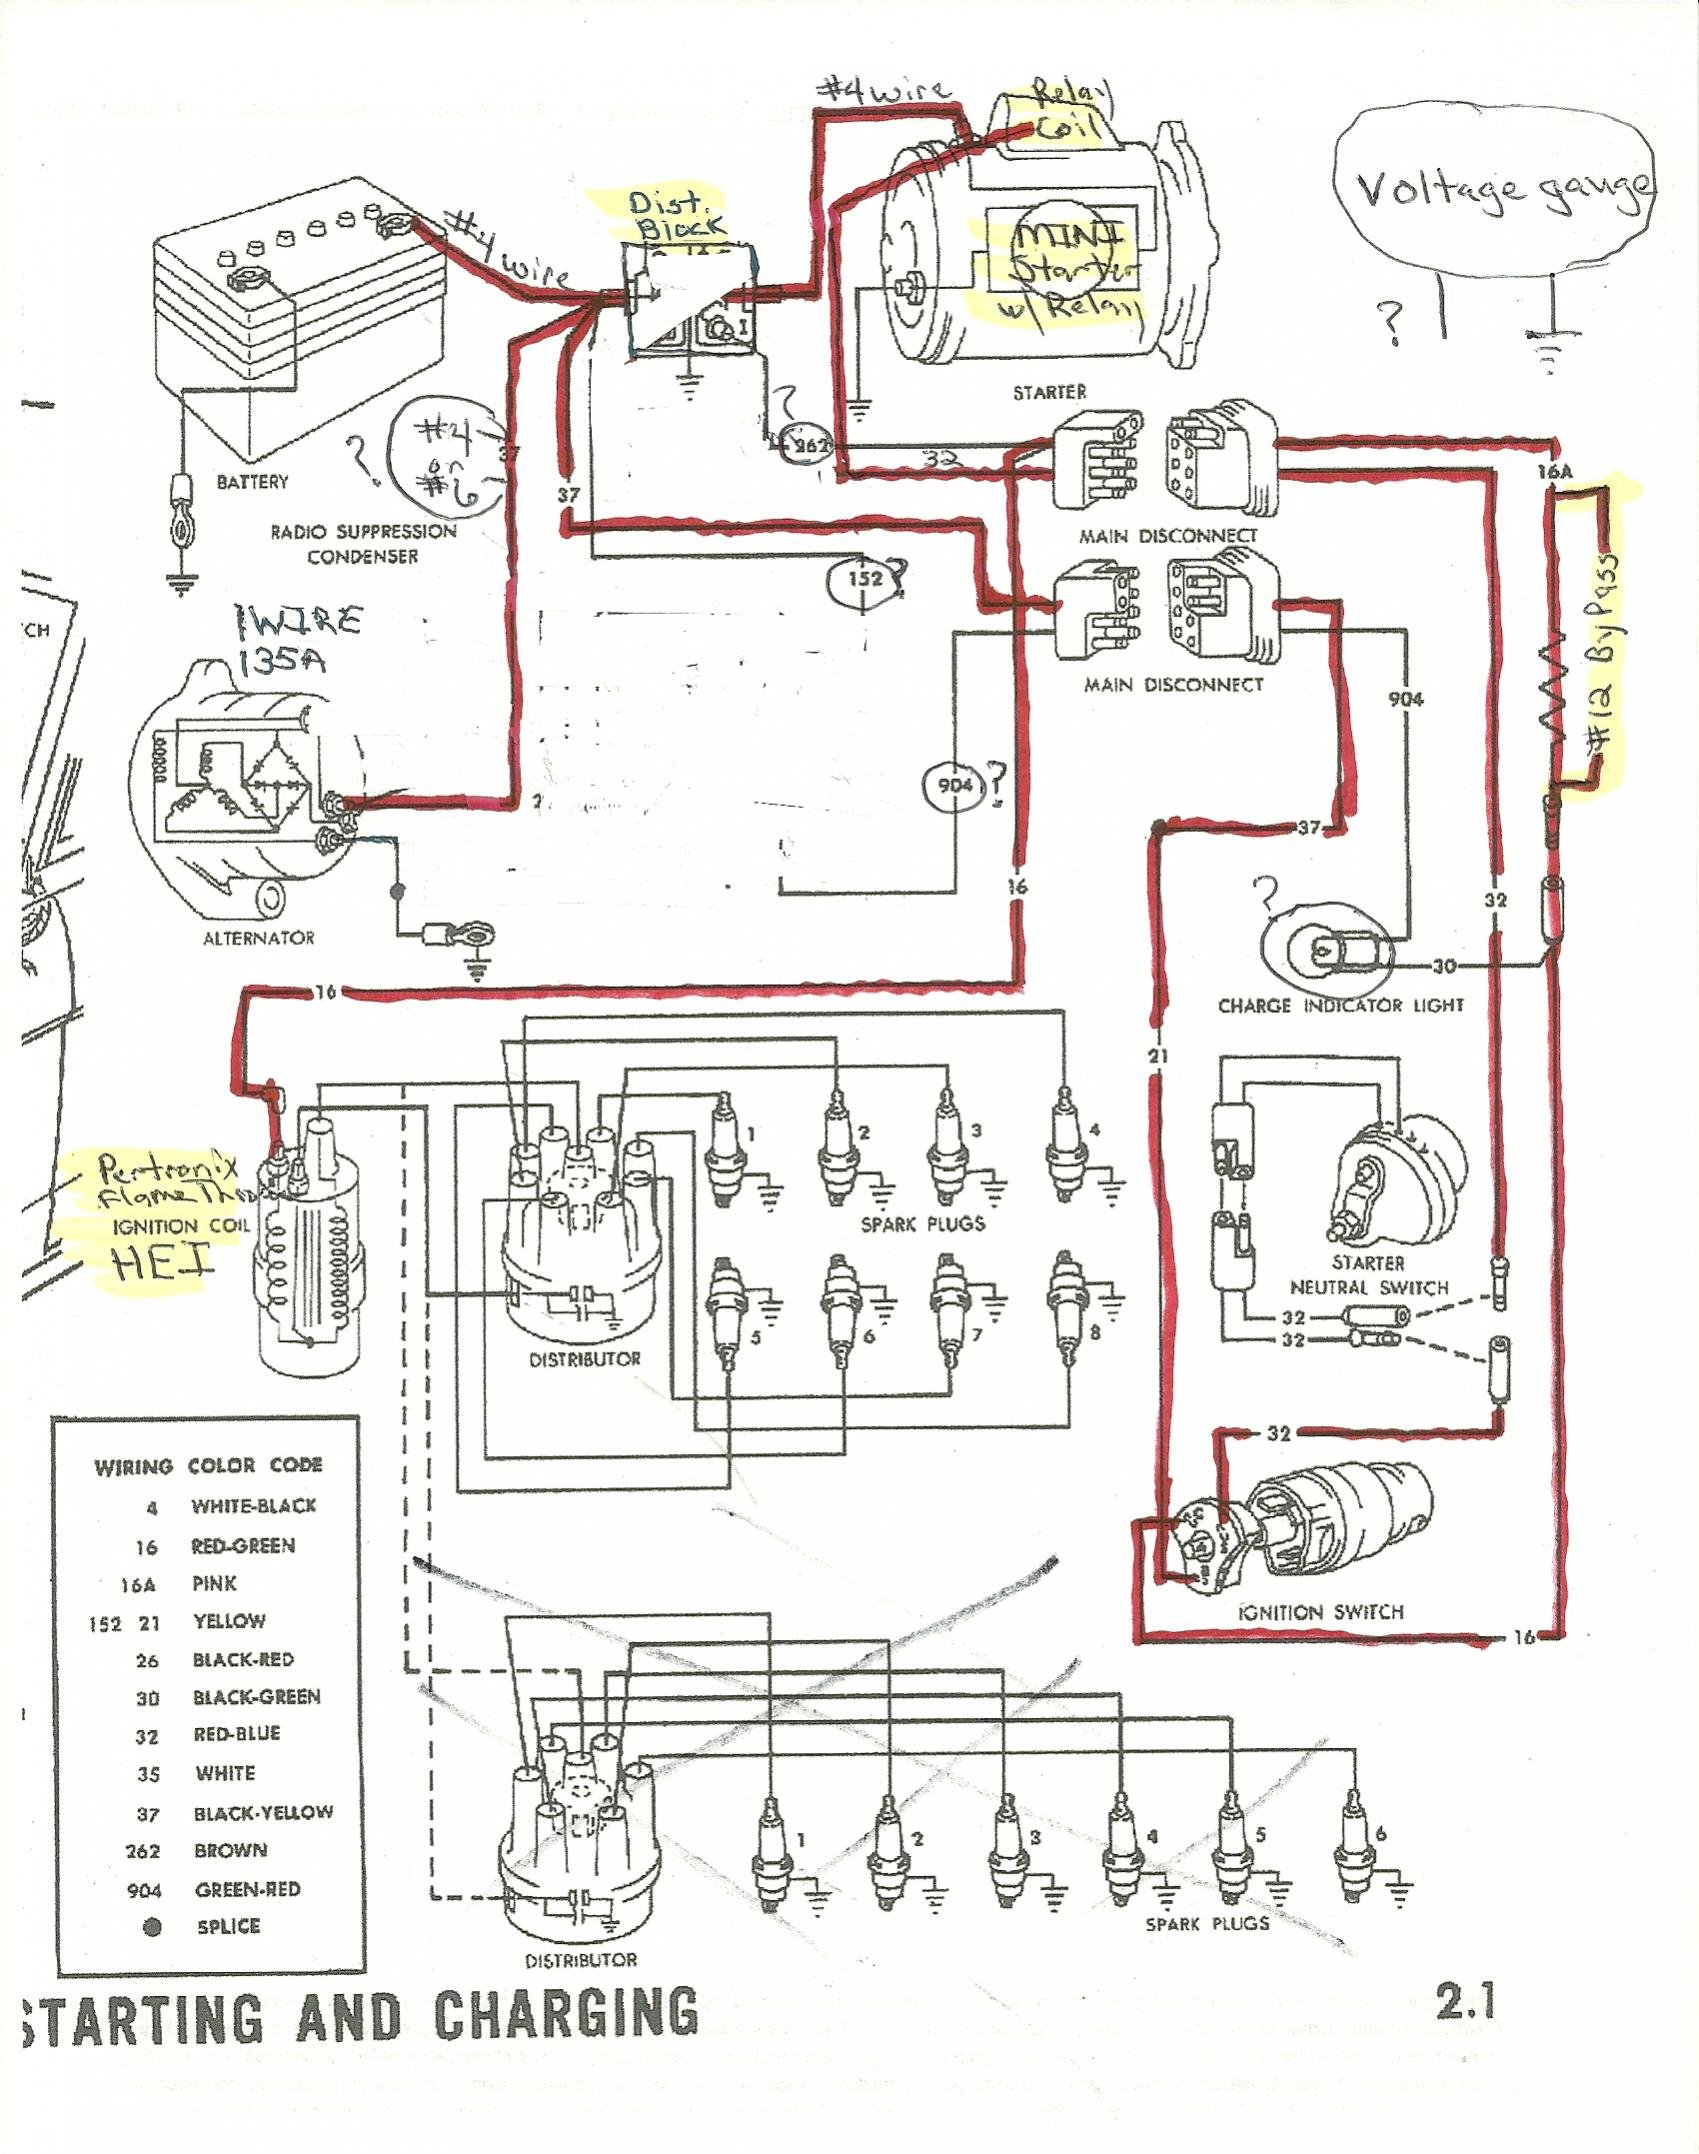 163469d1347246202 1965 alternator starter distributor wiring scan0001 1970 ford mustang mercury cougar original wiring diagram Ford Alternator Wiring Diagram at mifinder.co